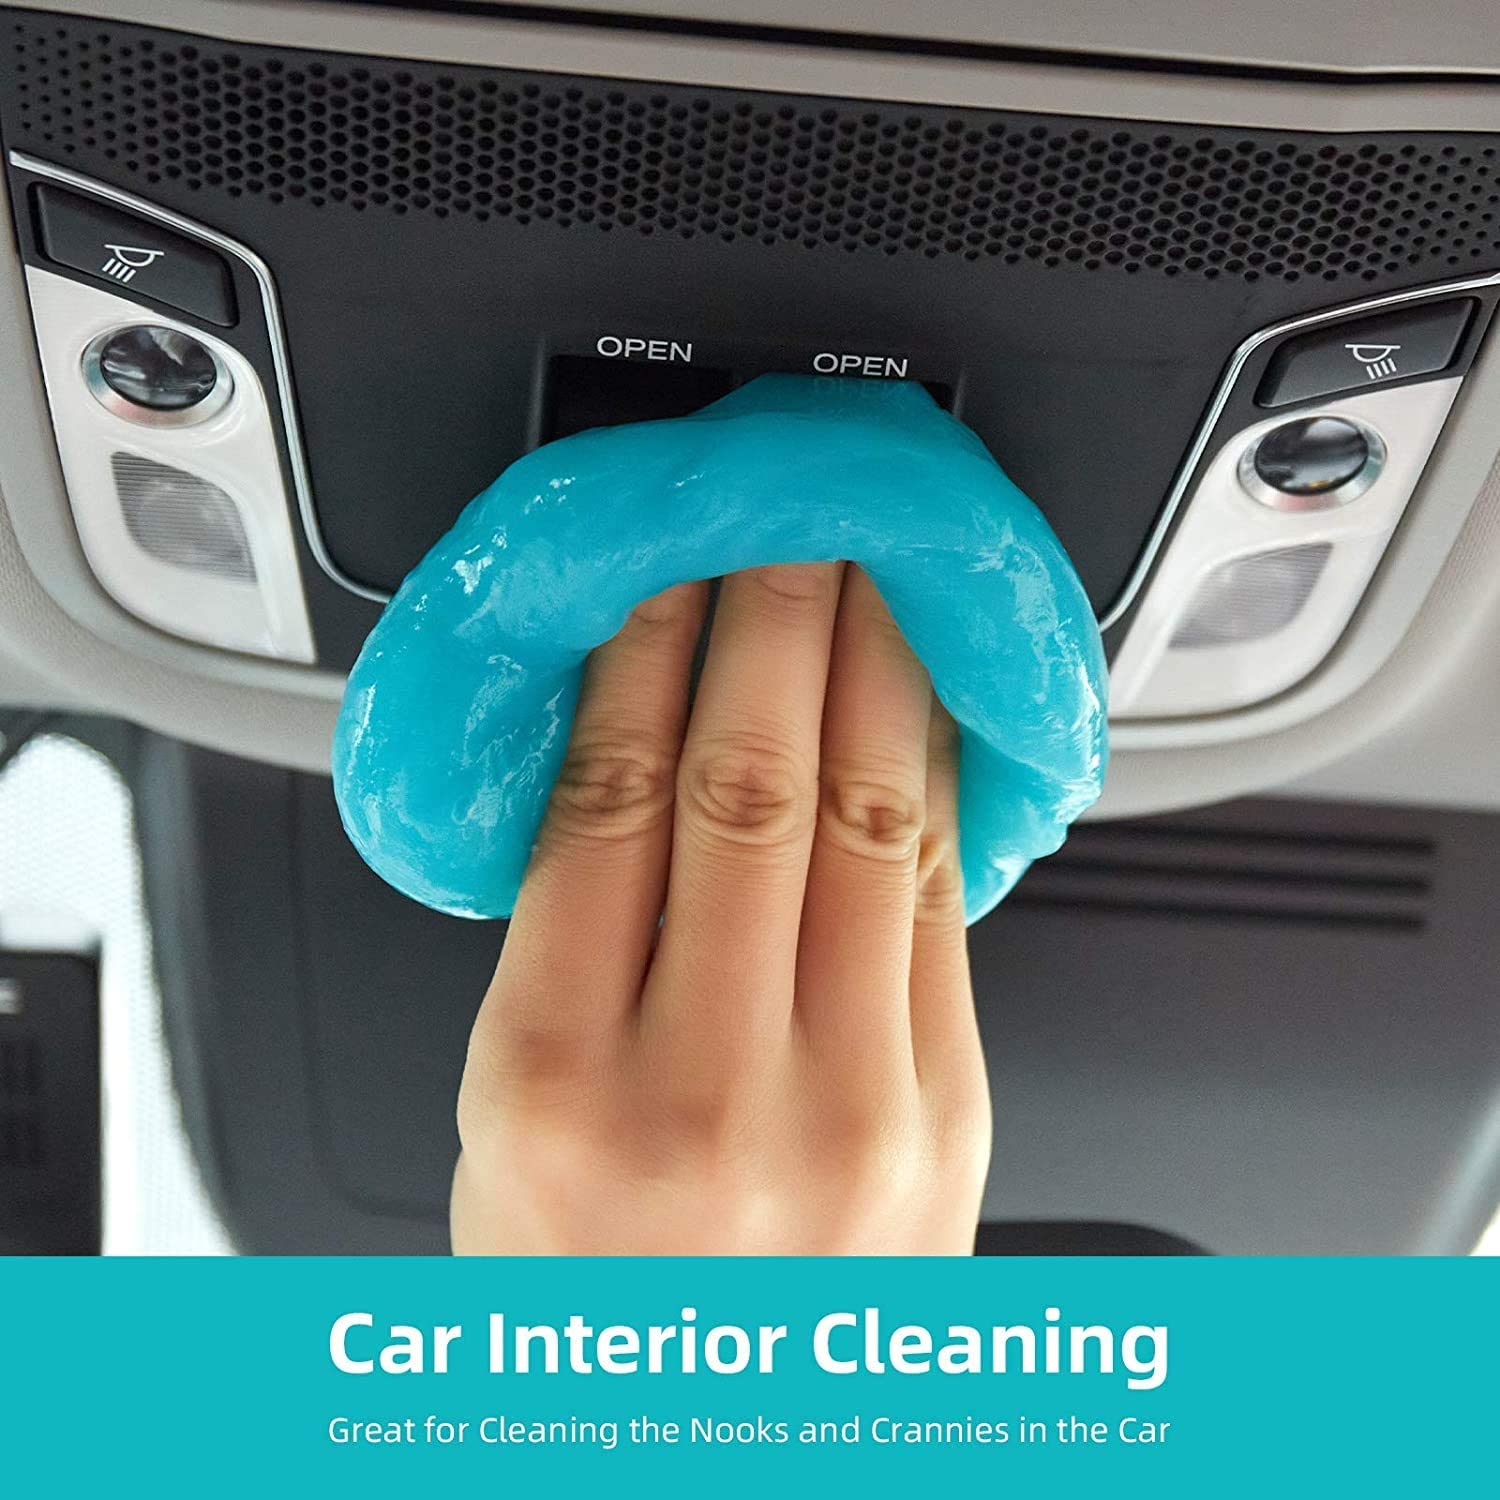 XBRN Cleaning Gel for Car Detailing Putty Cleaning Putty Detailing Gel Detail Tools Car Interior Cleaner Universal Dust Removal Gel Vent Cleaner Keyboard Cleaner for Laptop,Car Vents: Automotive